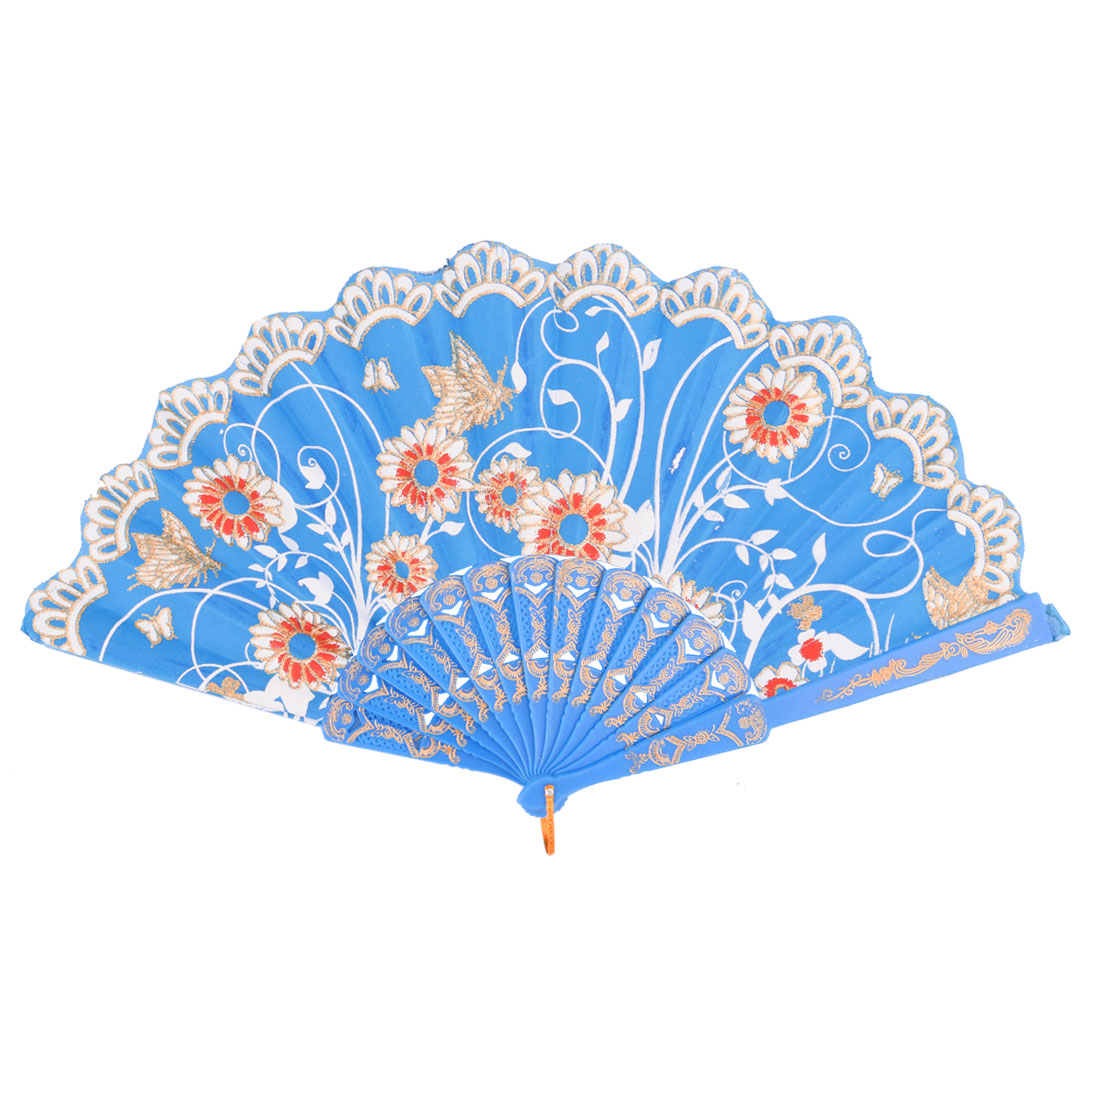 Plastic Frame Peacock Pattern Summer Folding Handheld Hand Fan Hand-crafted